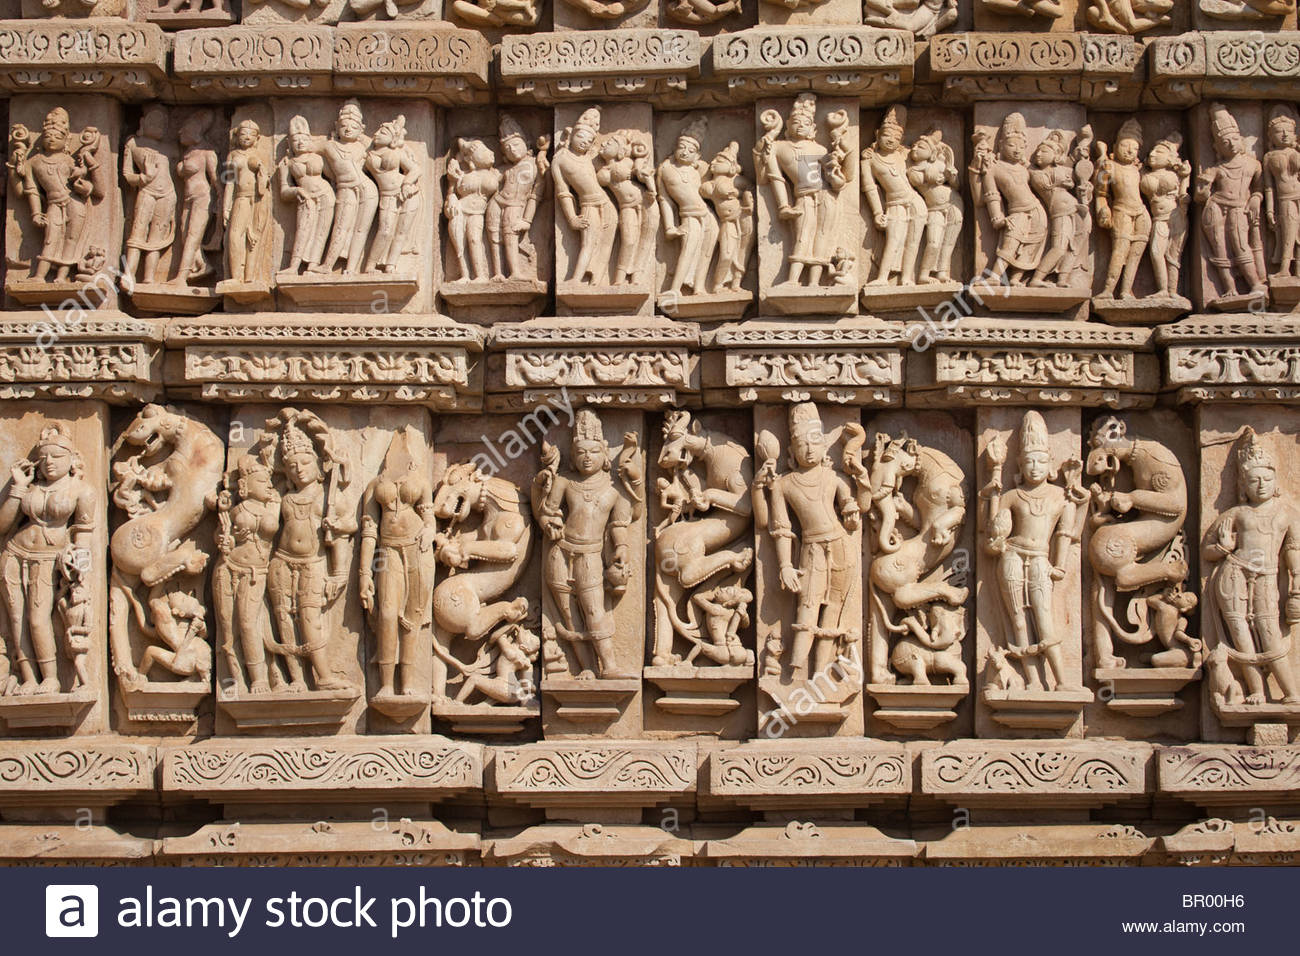 Stone carvings on the temple walls at khajuraho madhya